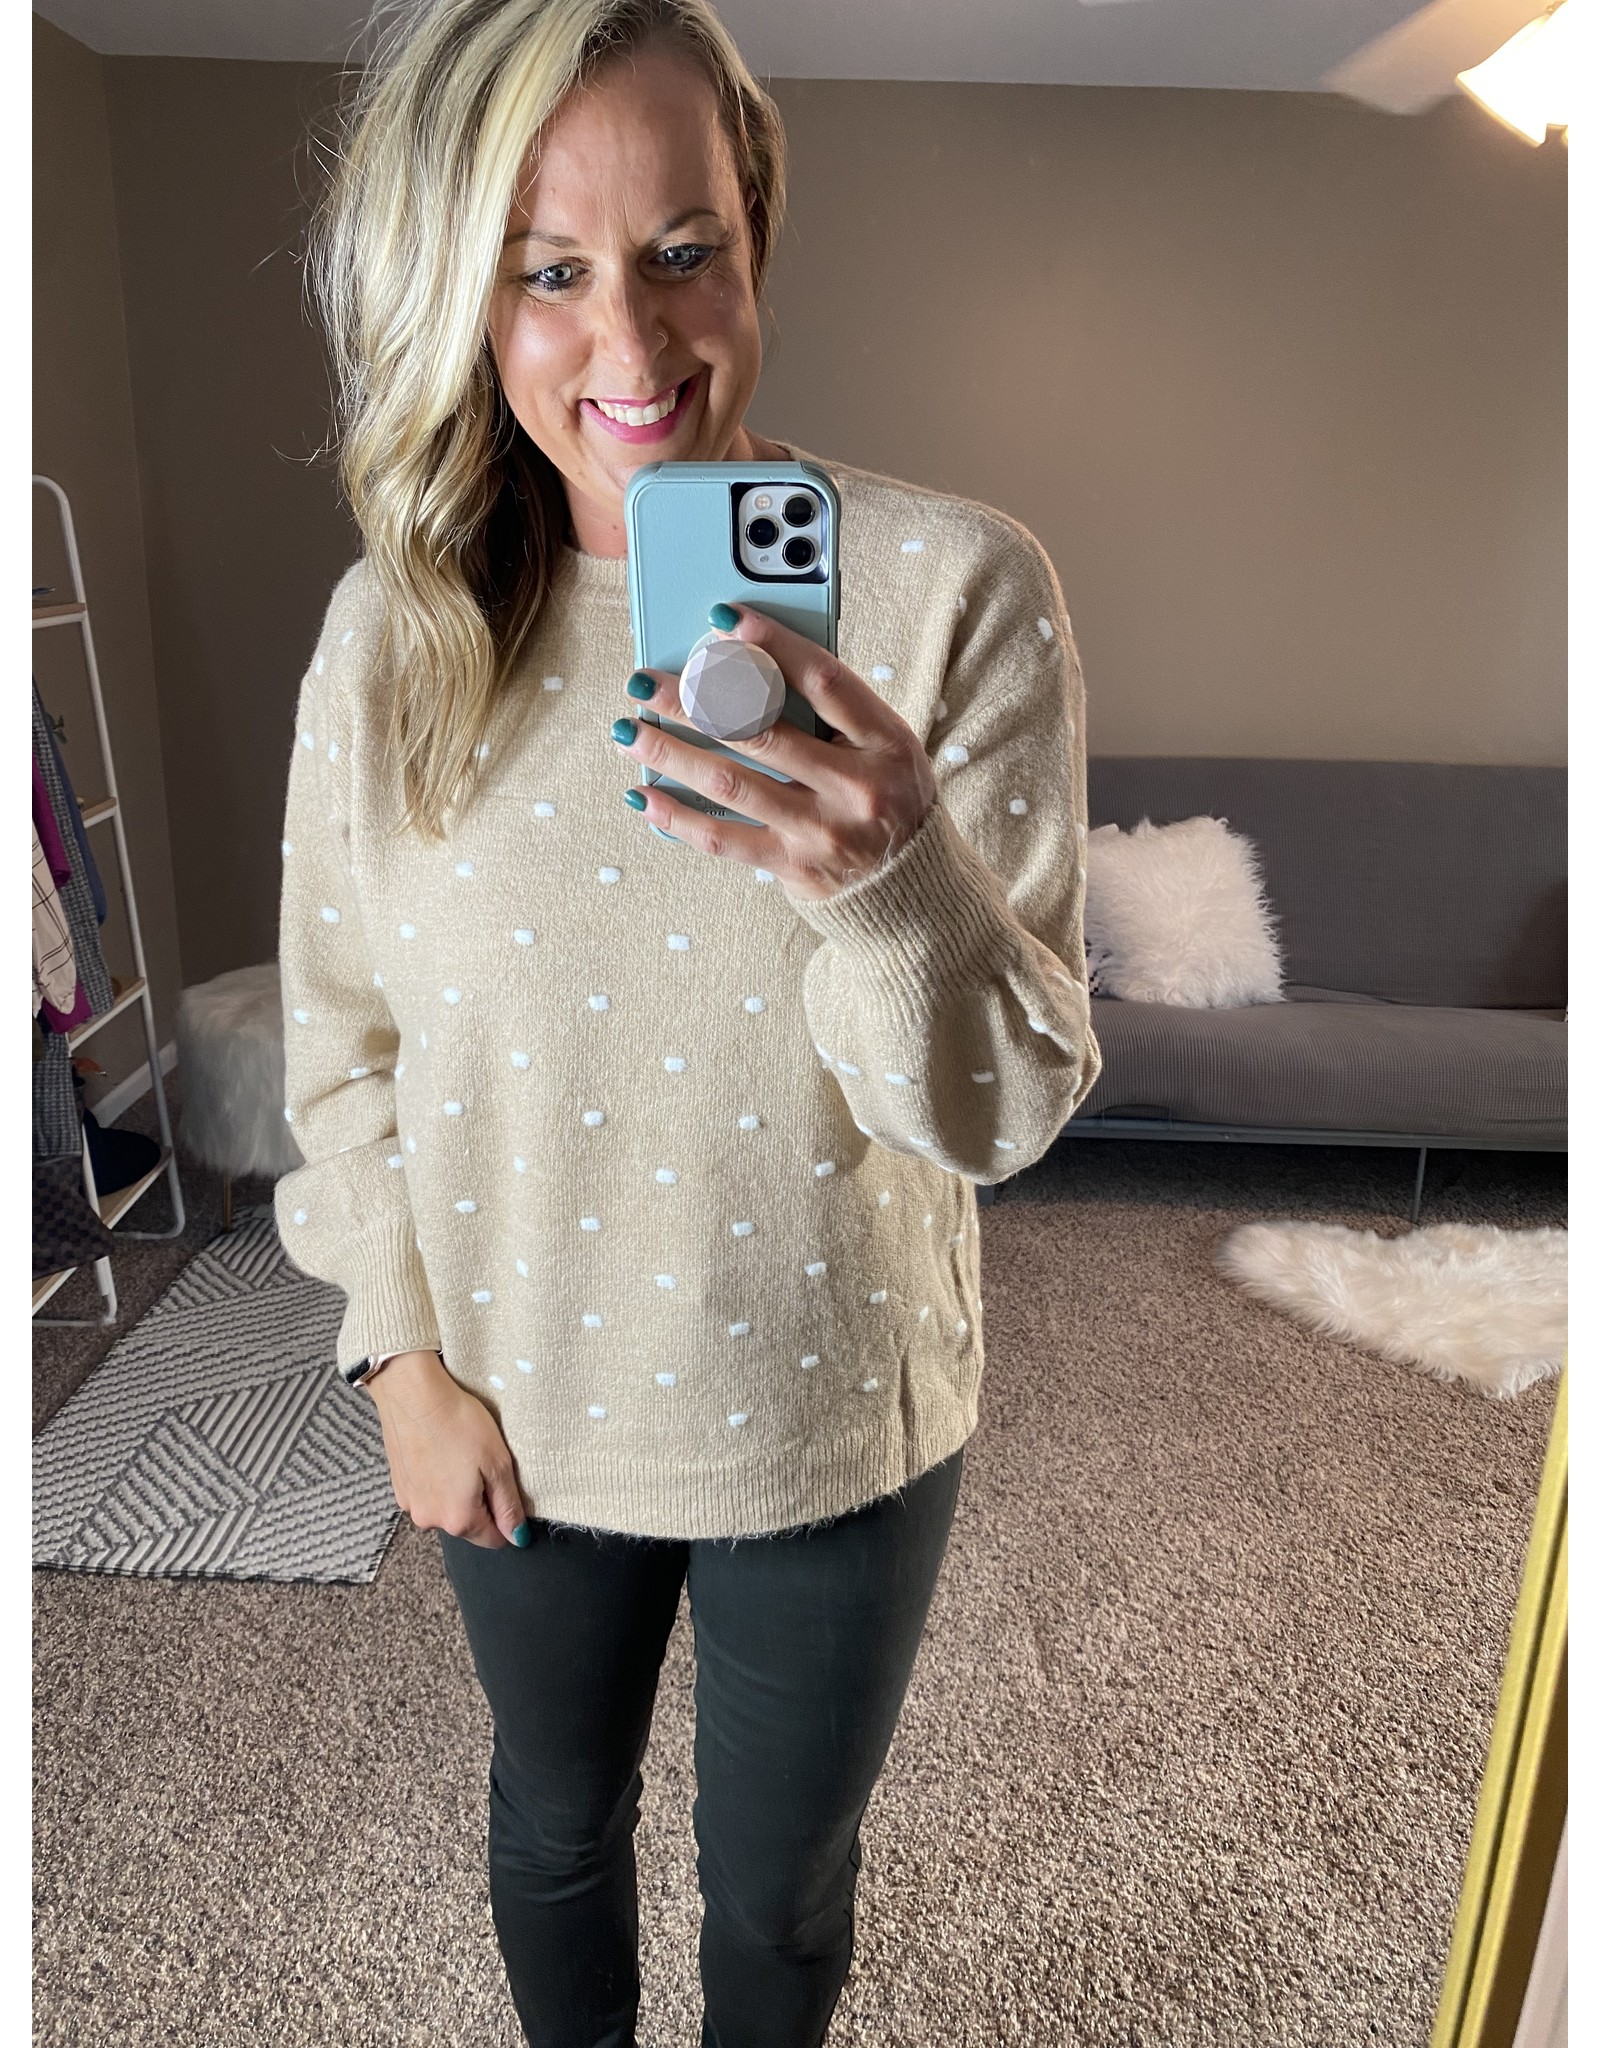 Be Cool Polka dot pull over sweater